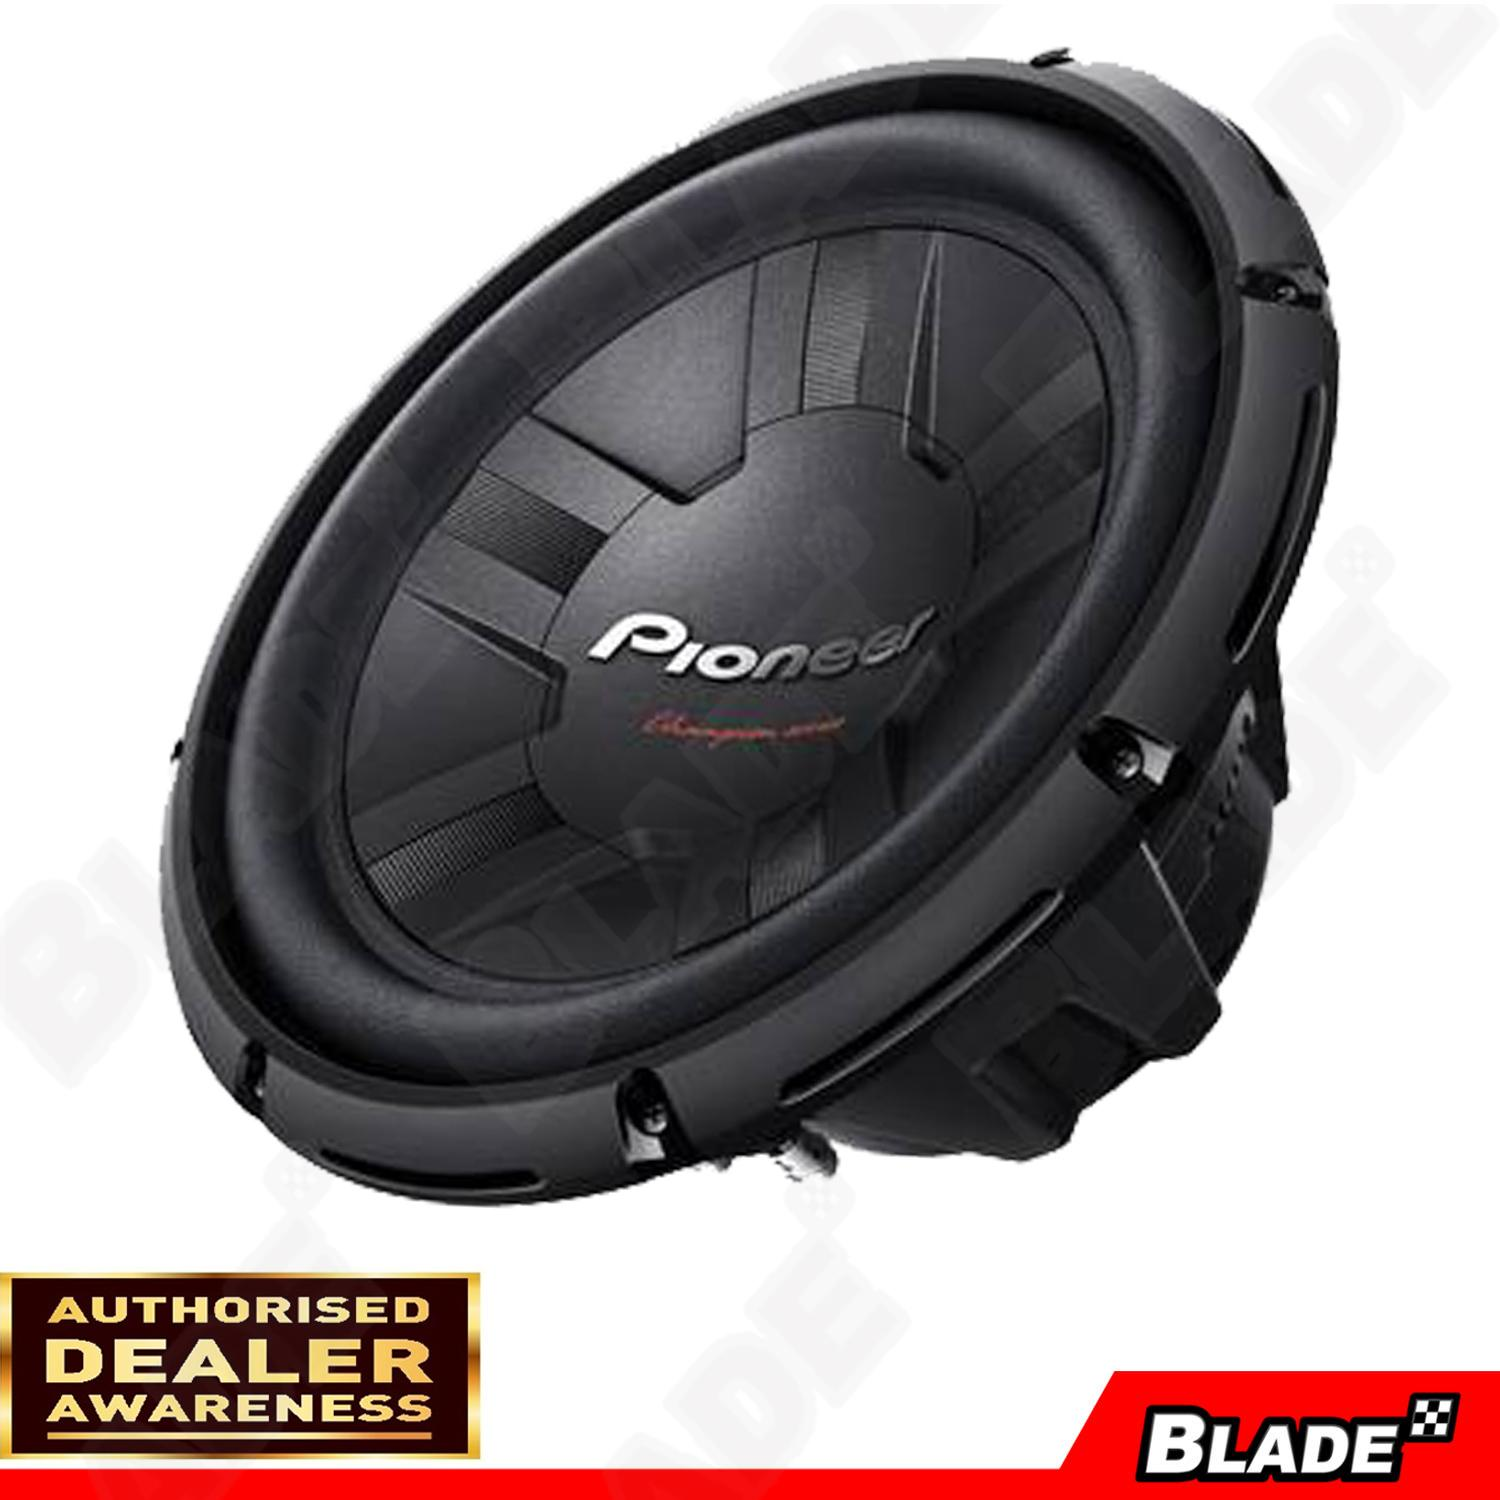 Pioneer Philippines Price List Cd Player Speaker Ts F1634r Coaxial 2way W311d4 Component Subwoofer 1400w Max